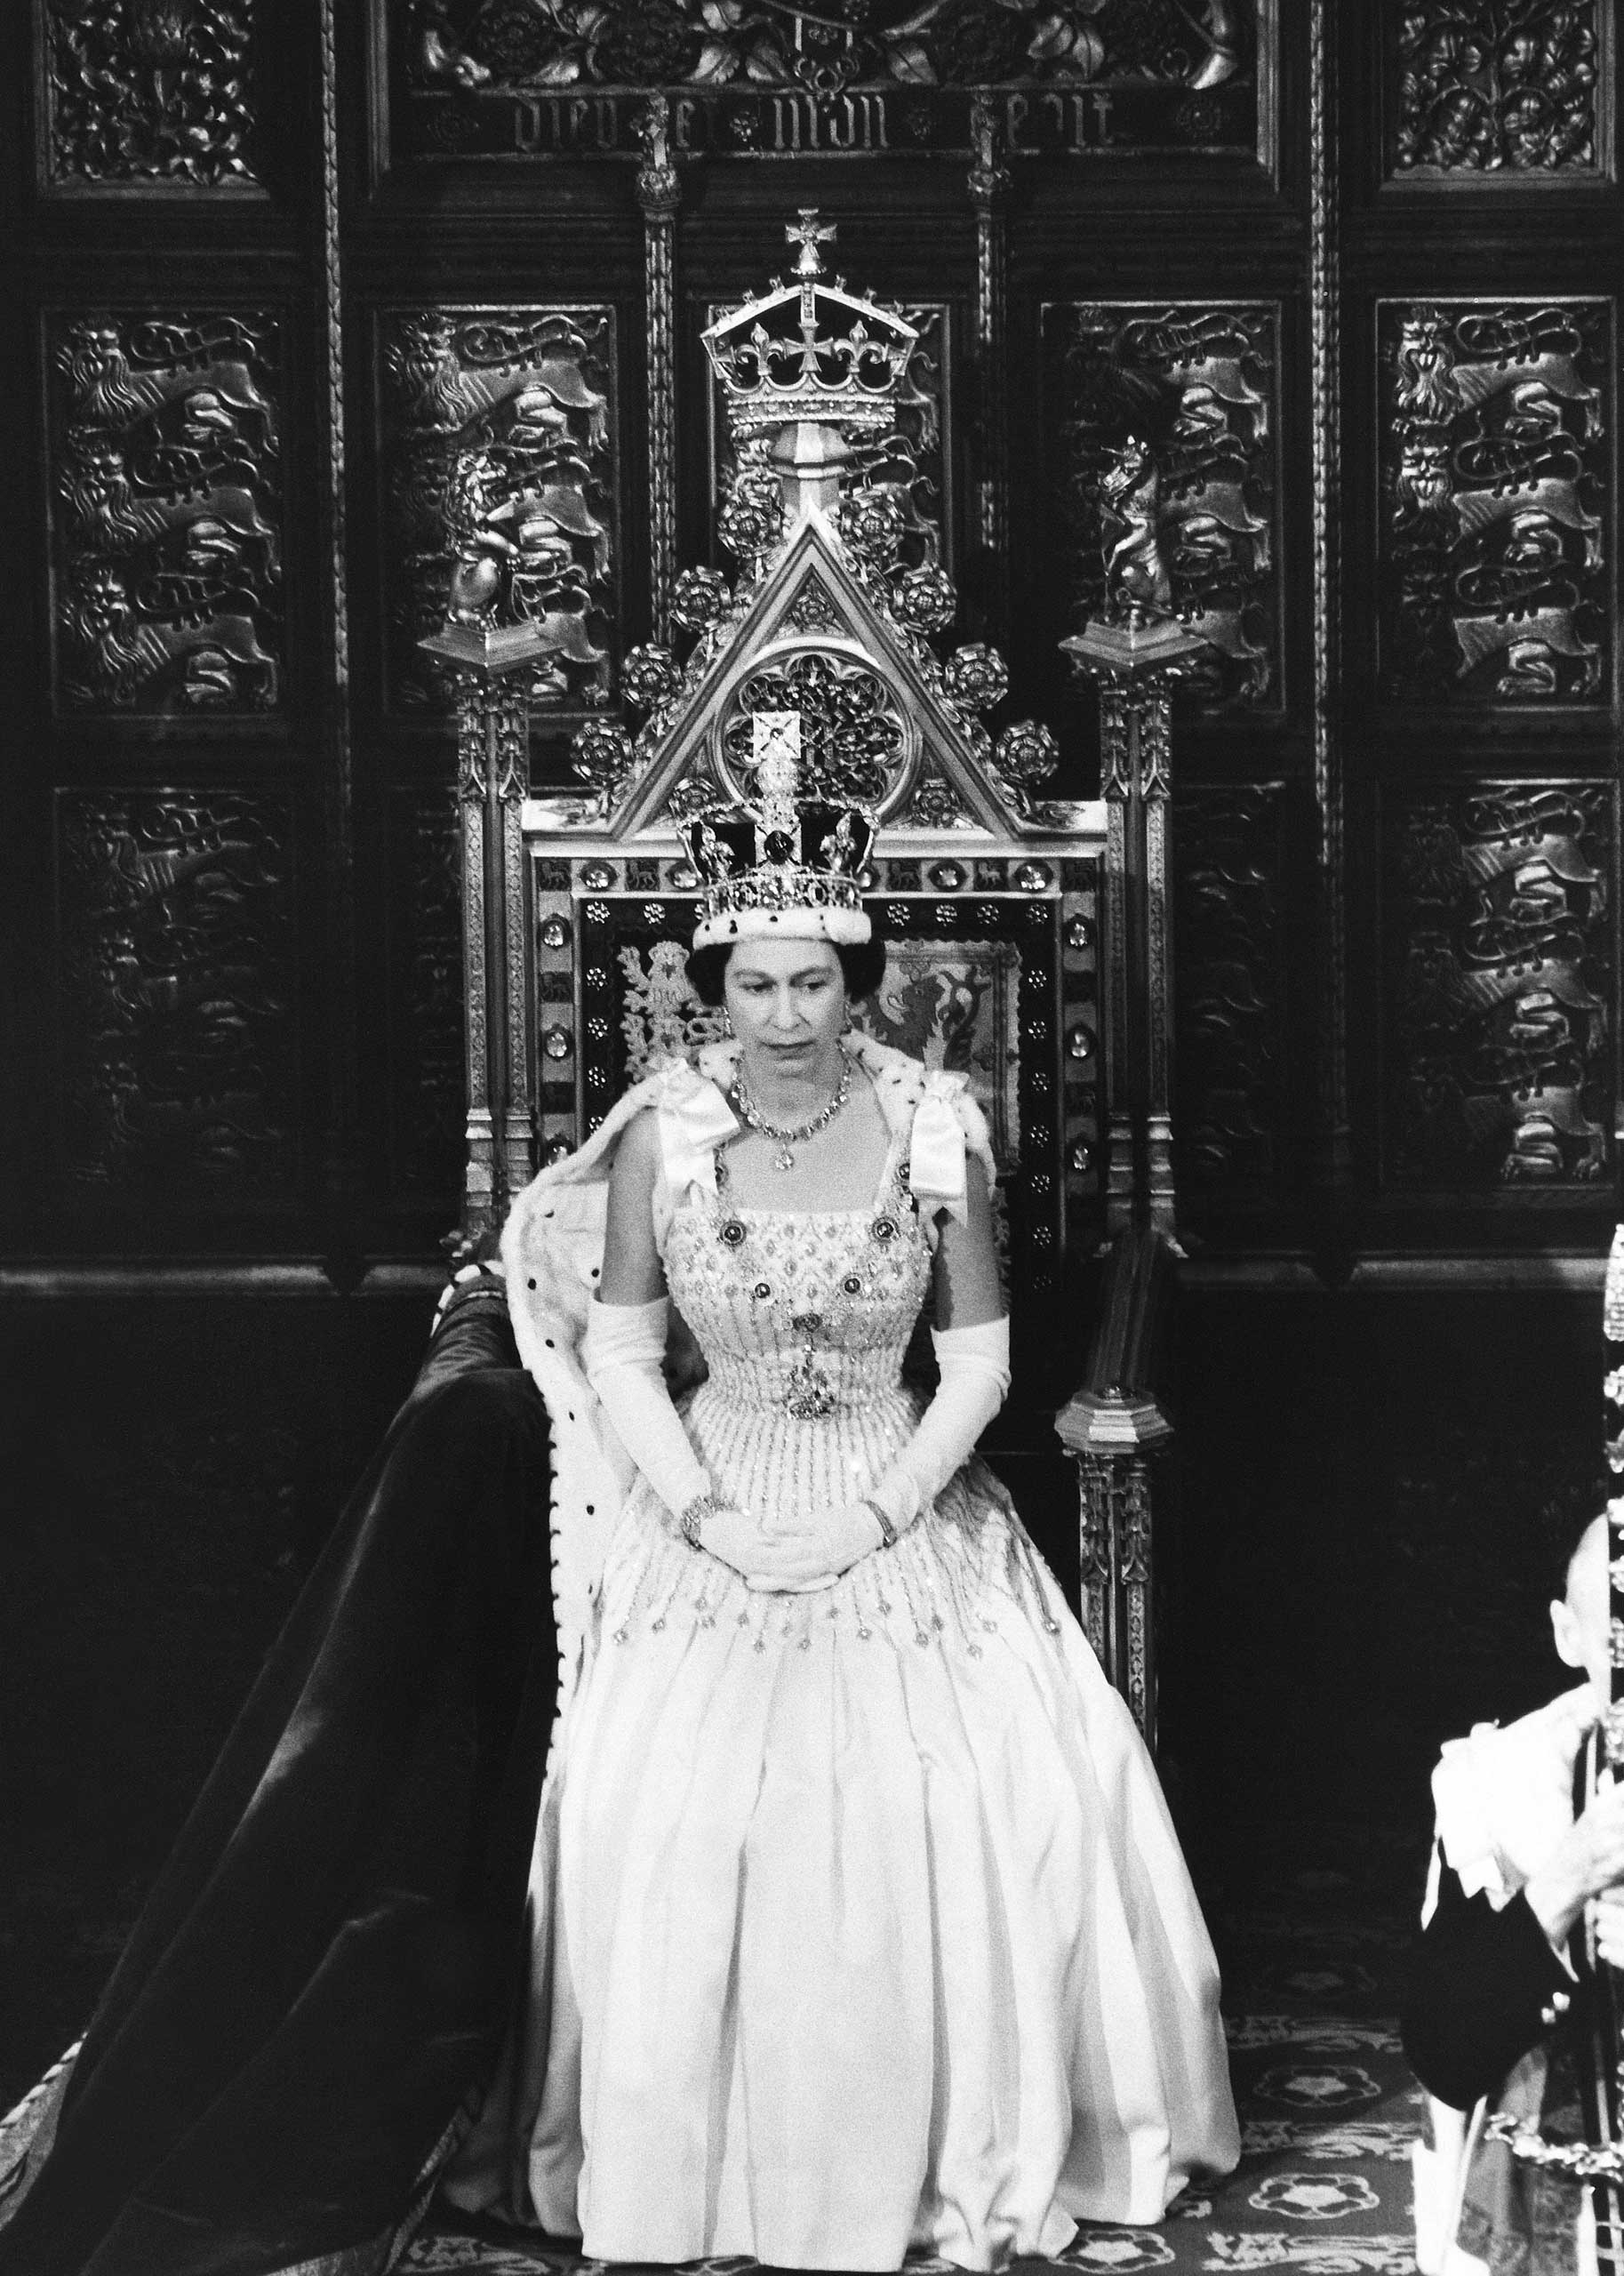 Queen Elizabeth II during the State Opening Of The Parliament in 1966.